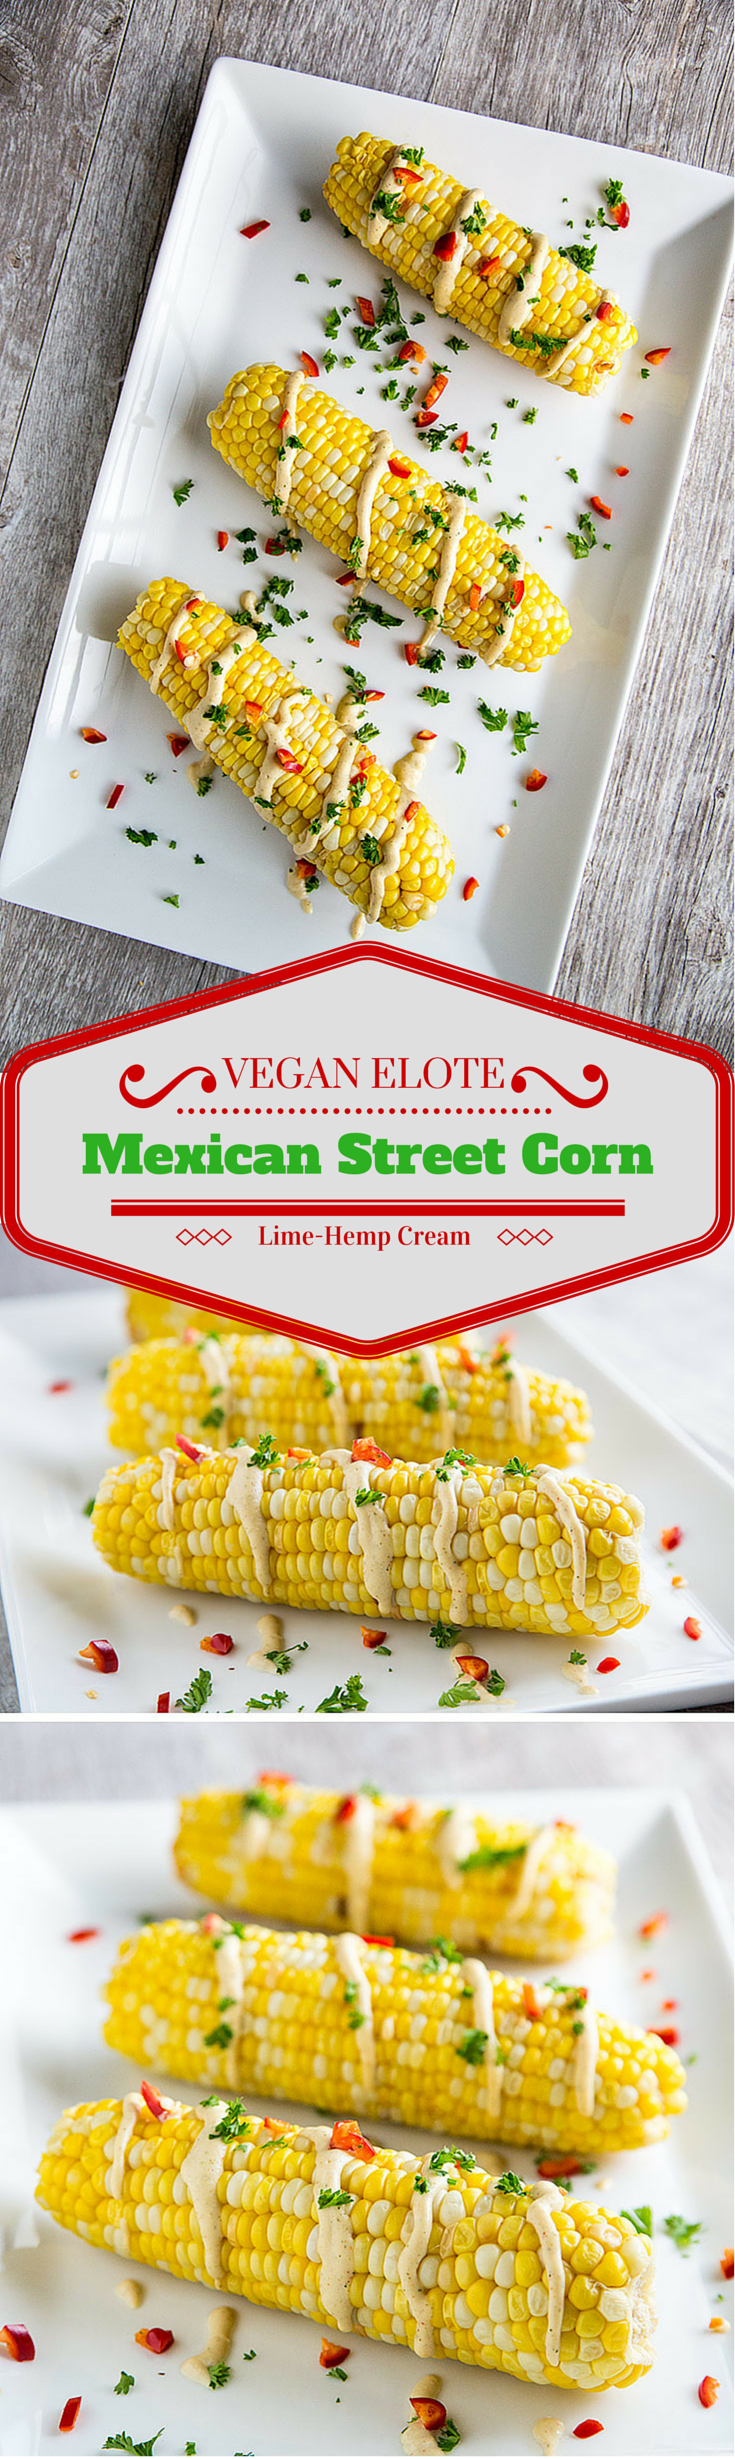 Vegan Elote or Mexican-Inspired Corn on the Cob with Hemp-Lime Sauce: Fresh corn on the cob is slathered in a spicy, limey, cheesy, vegan sauce and sprinkled with chopped jalapeño peppers and cilantro.